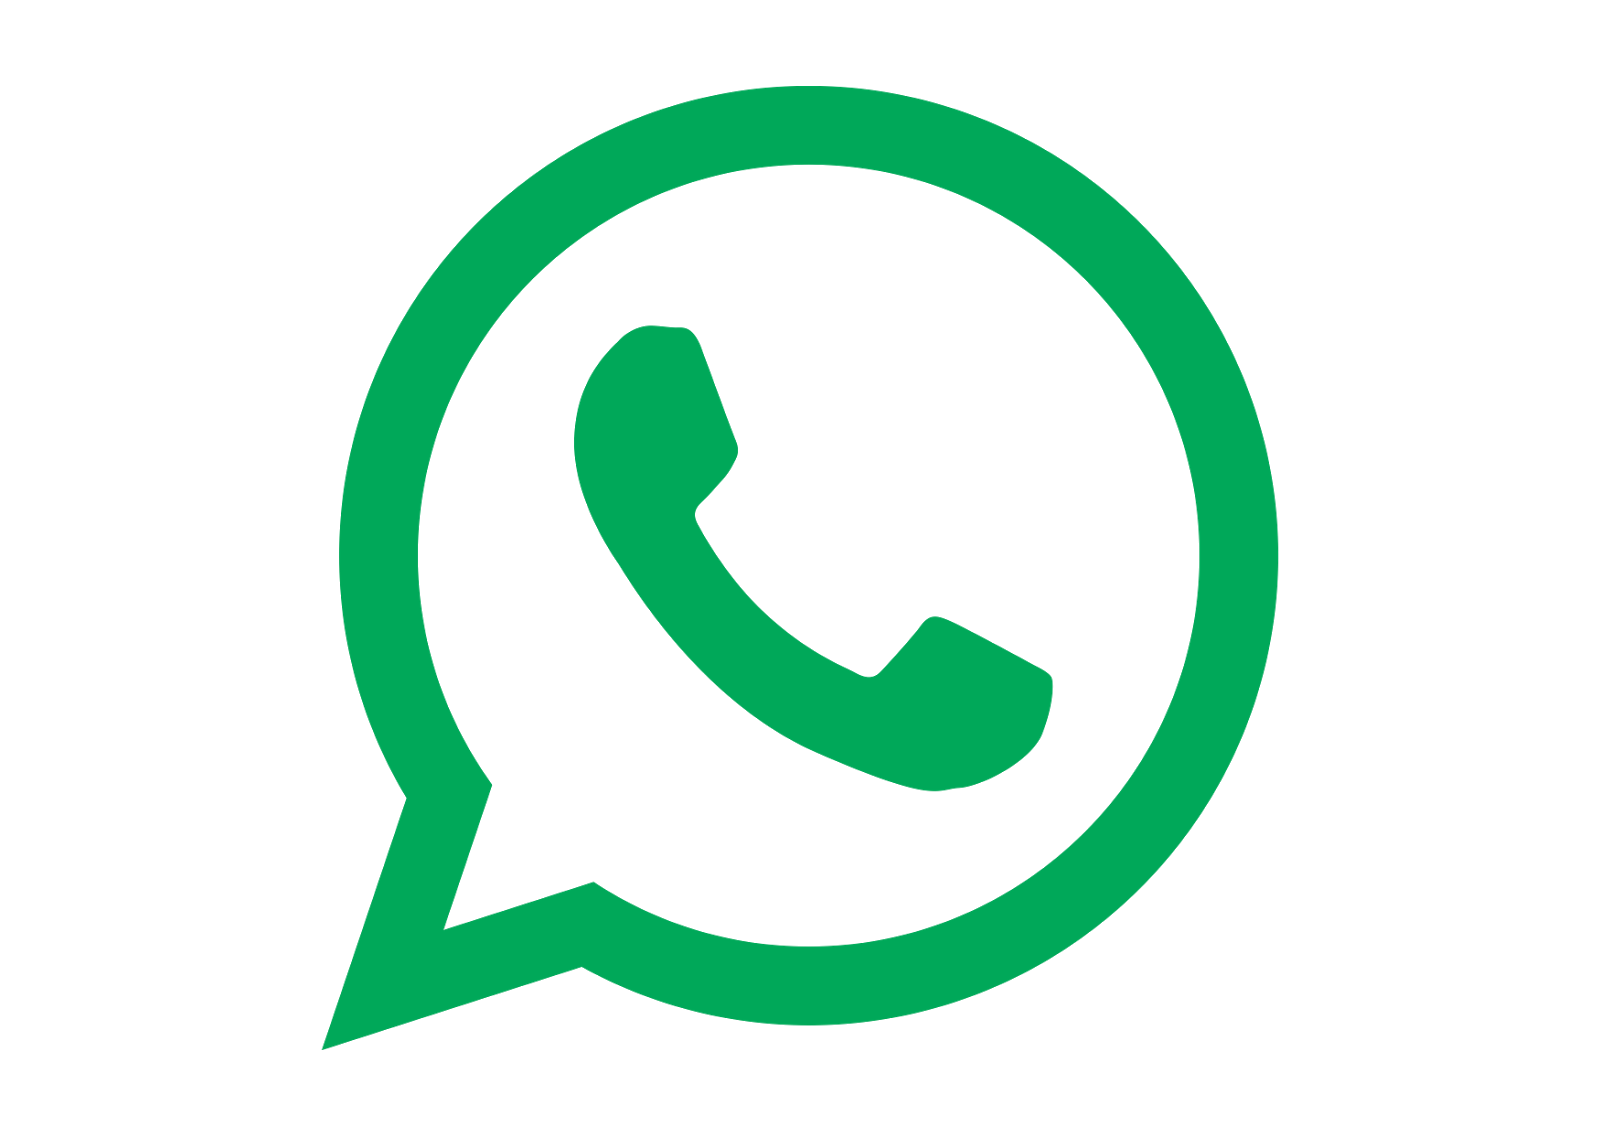 Whatsapp Logo Eps PNG Transparent Whatsapp Logo Eps.PNG Images.